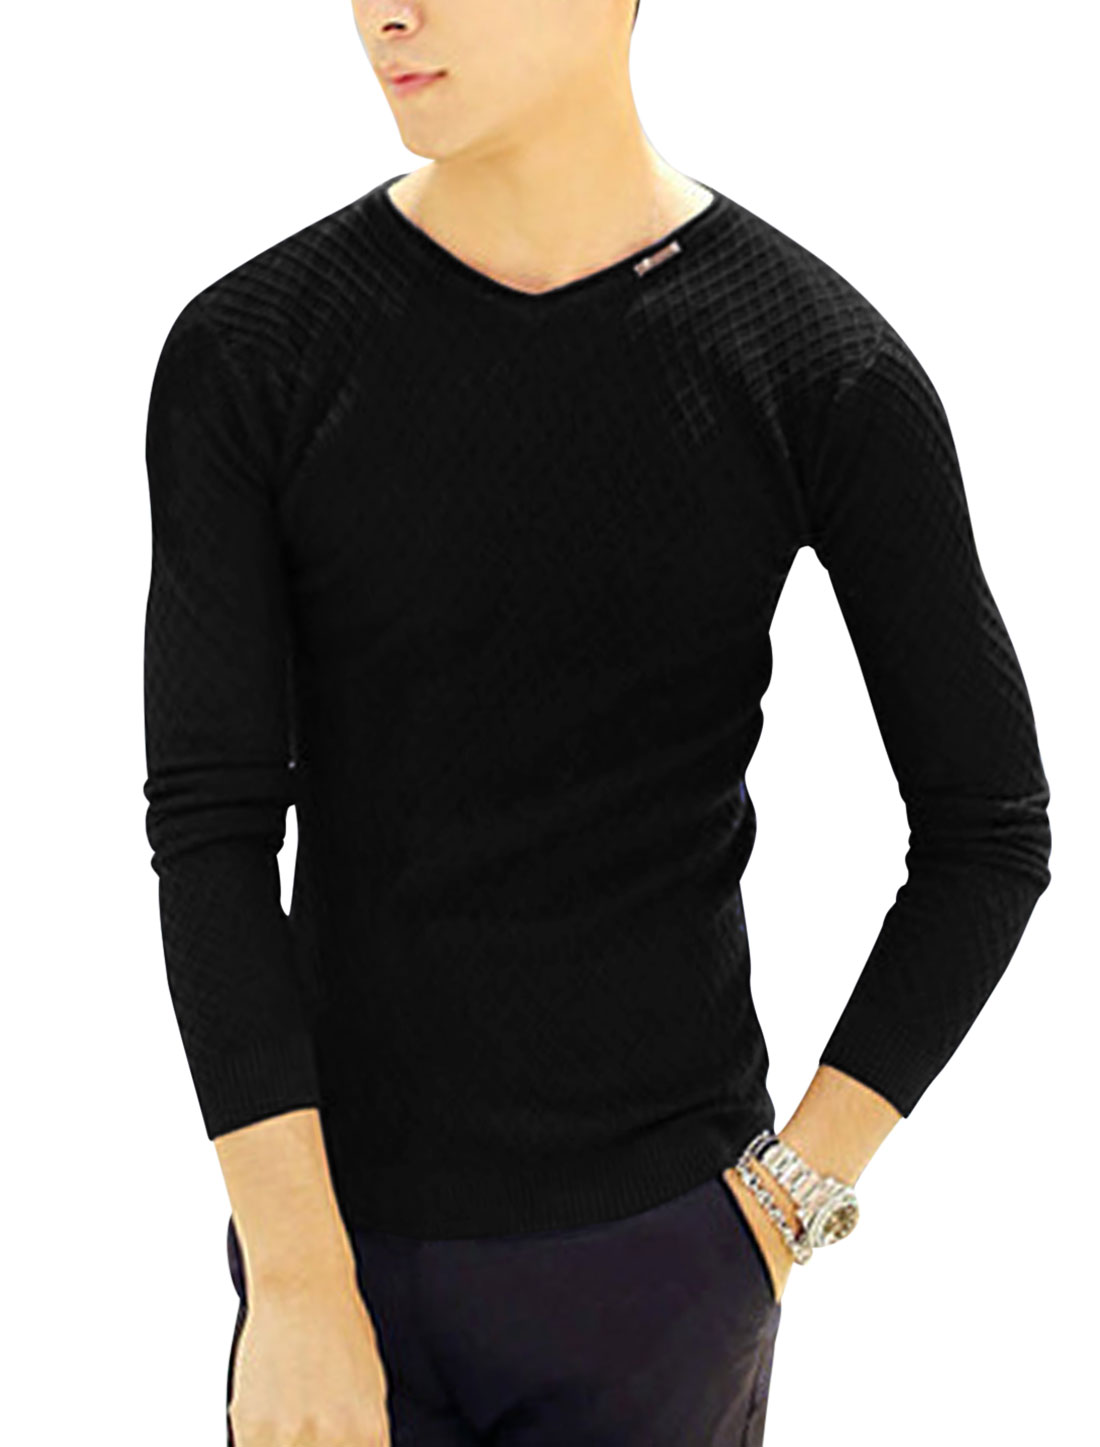 Man Black Long Sleeves Pullover V Neck Stretchy Plaids Design Knit Shirt S